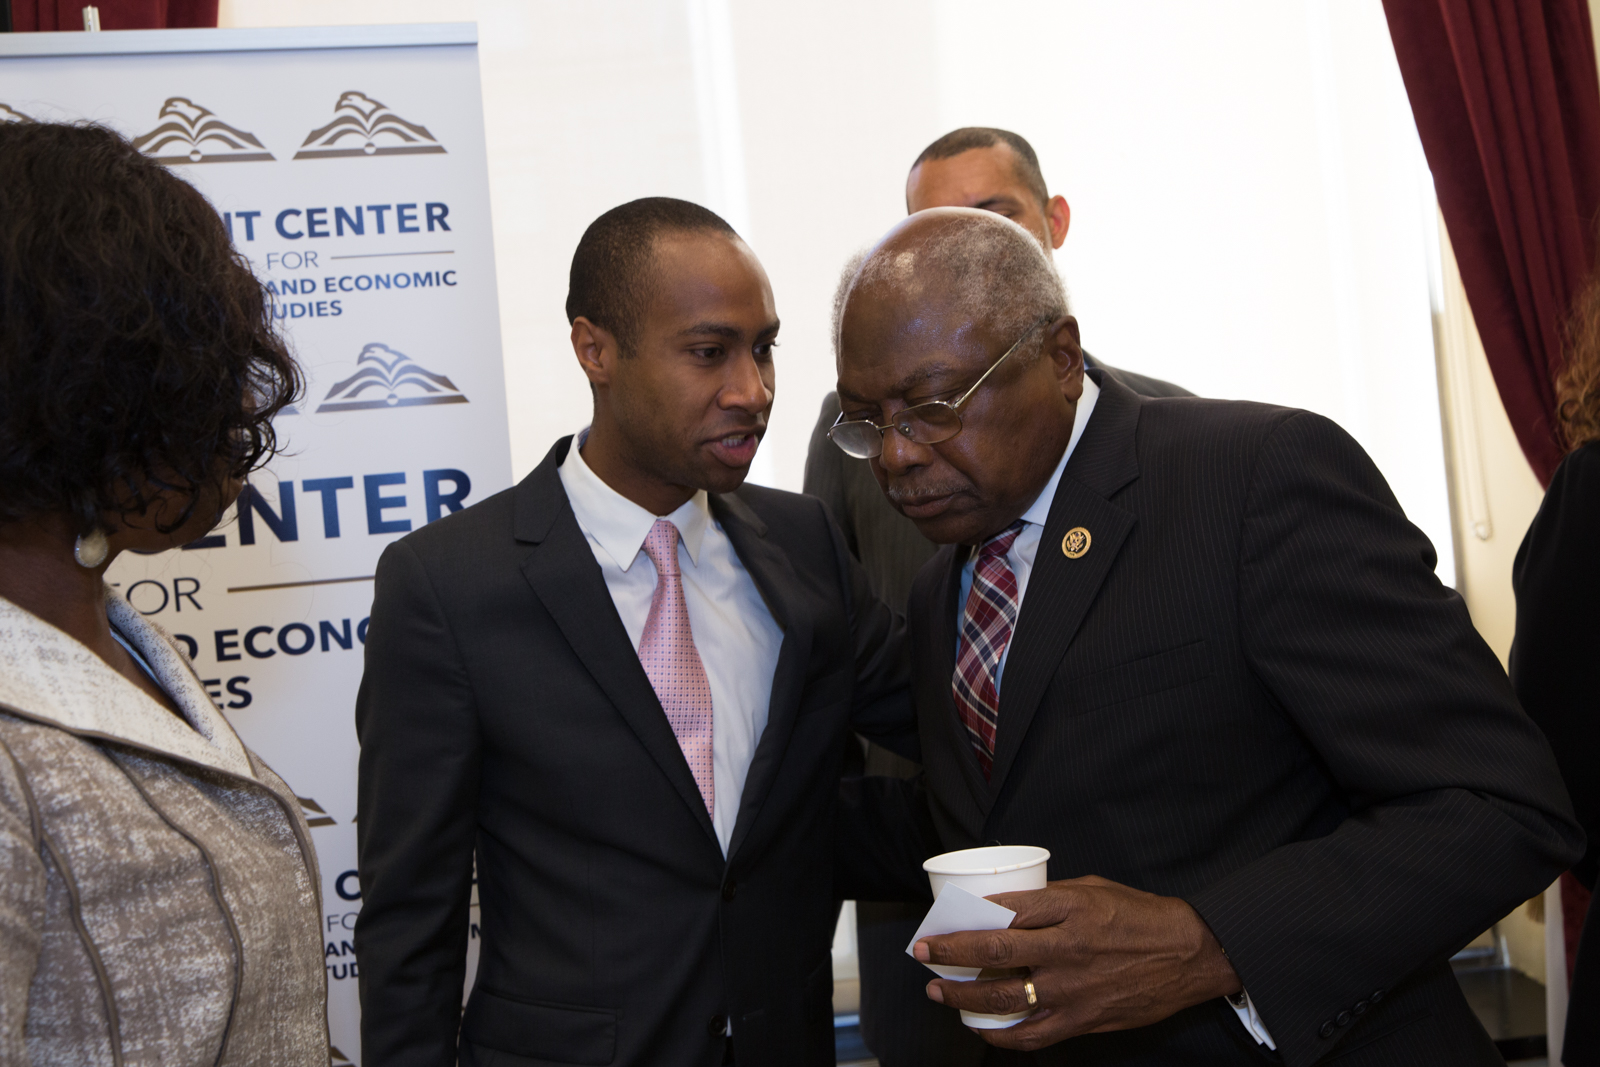 With Congressional icon Jim Clyburn